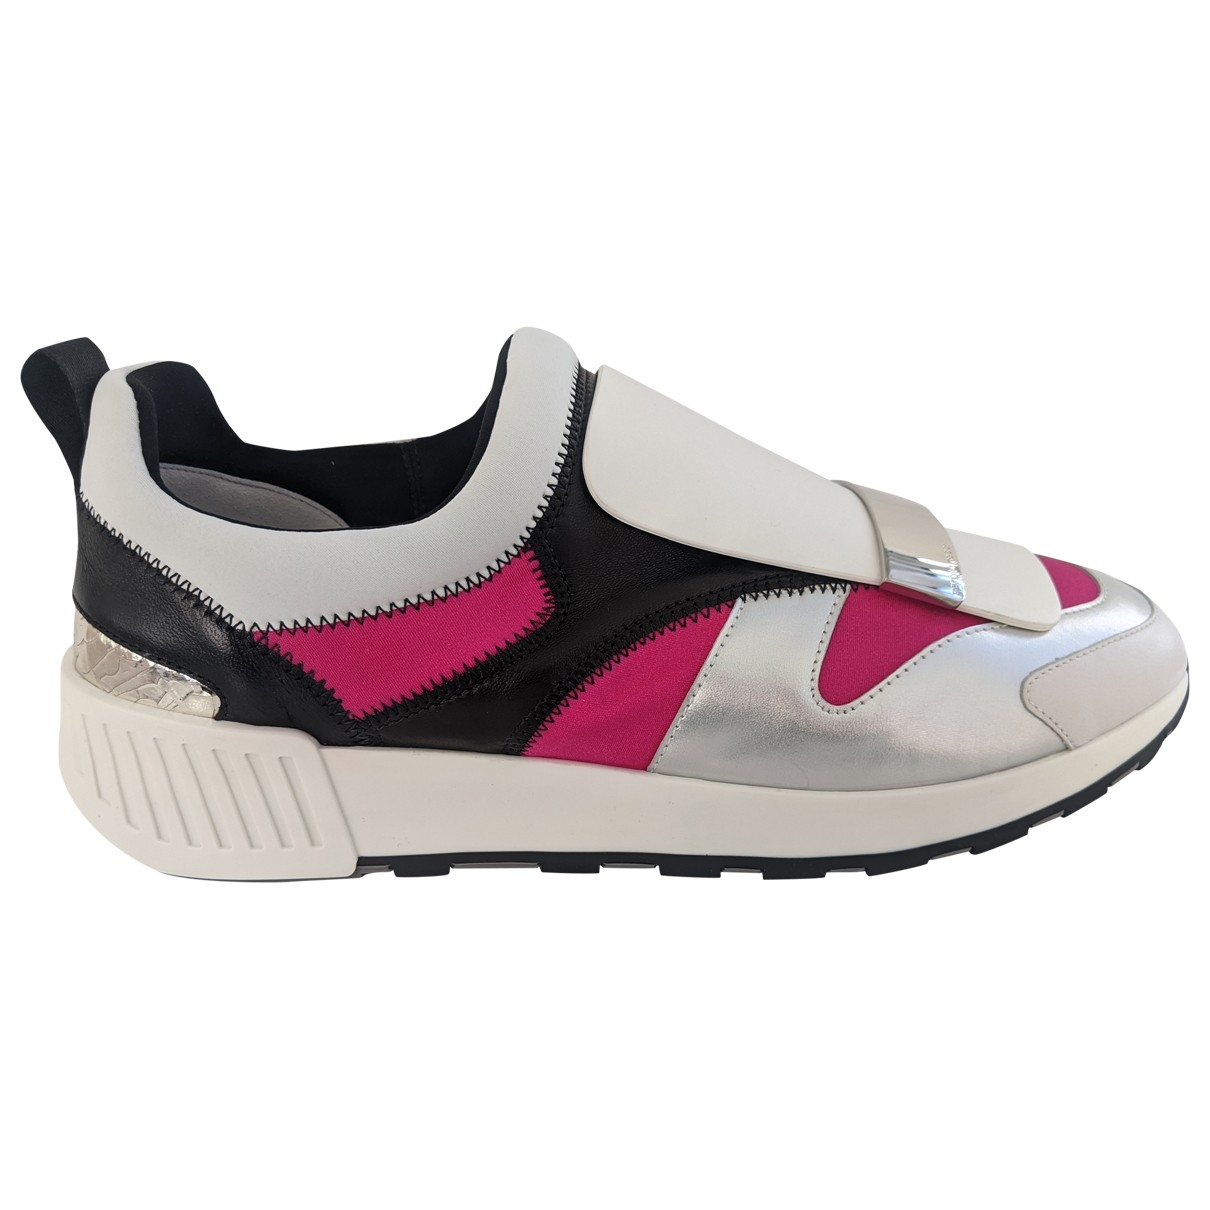 Sergio Rossi SR1 Pink Leather Trainers for Women 40 EU